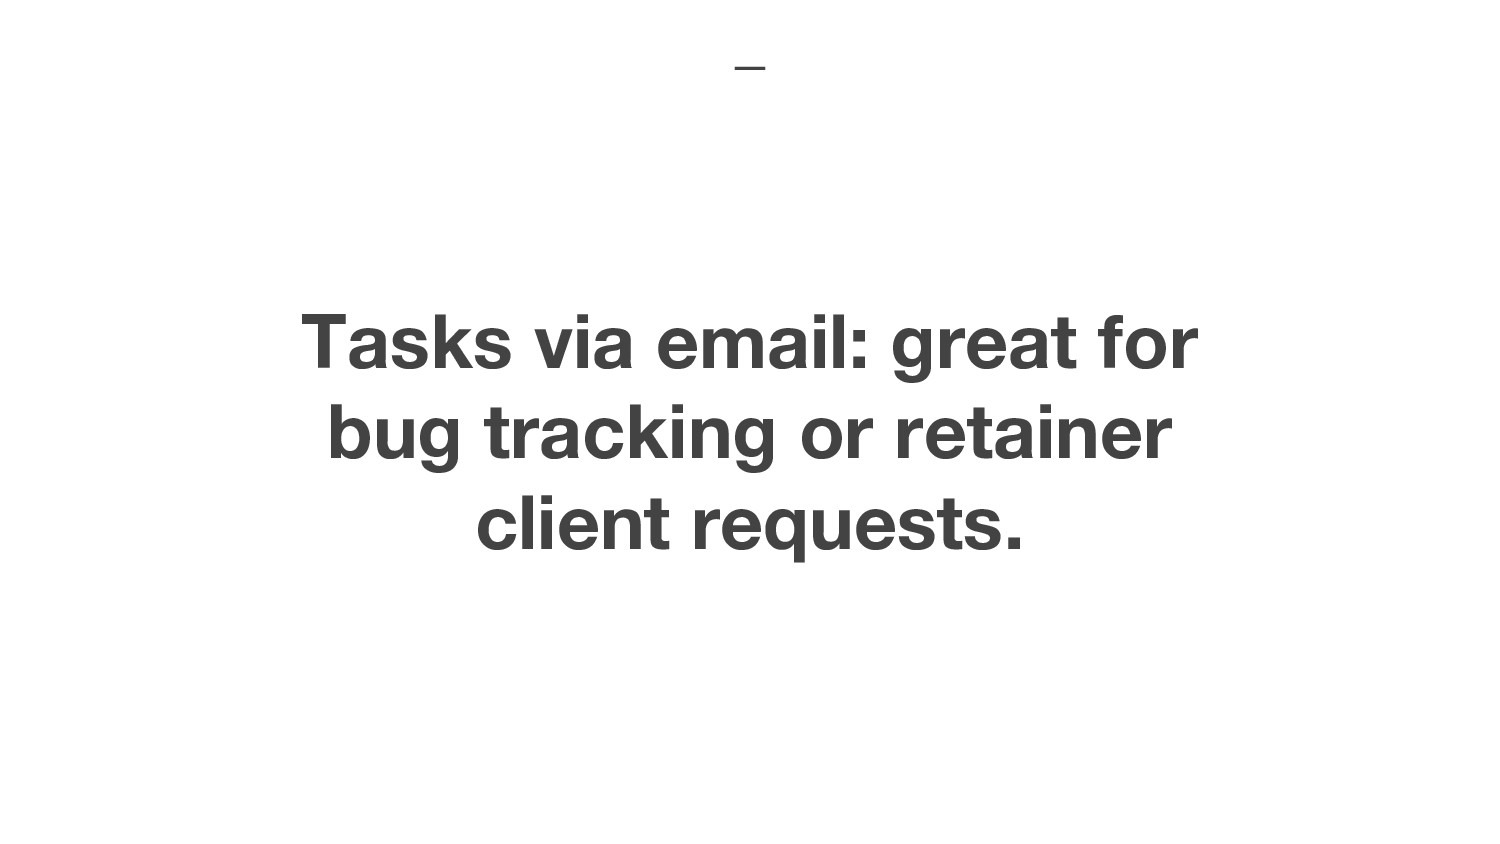 Tasks via email: great for bug tracking or reta...